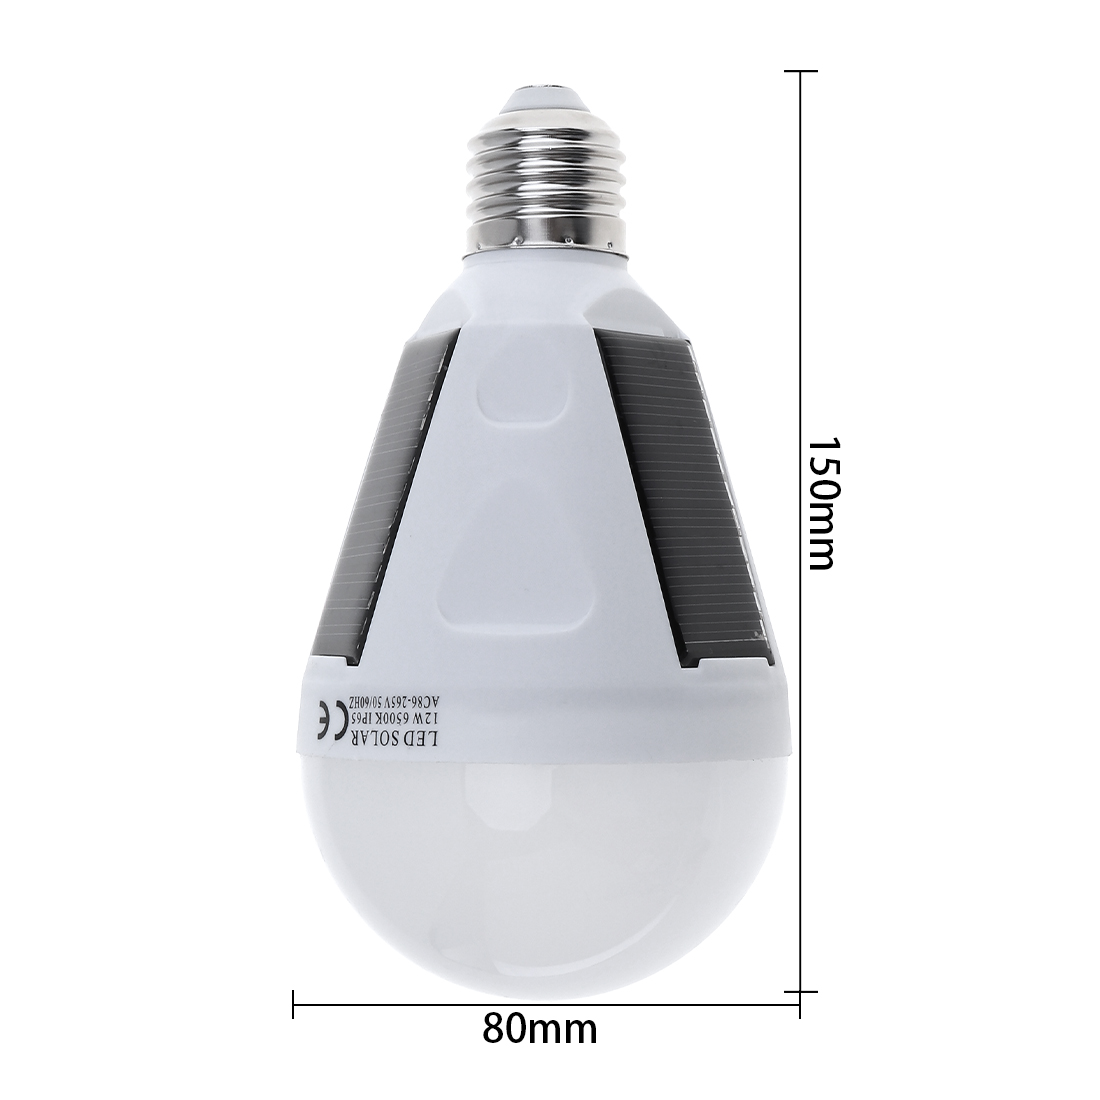 12W Waterproof LED Solar Light Bulb Portable Emergency Lamp with Hang Hook for Outdoor Garden Camping Hiking Fishing in Solar Lamps from Lights Lighting